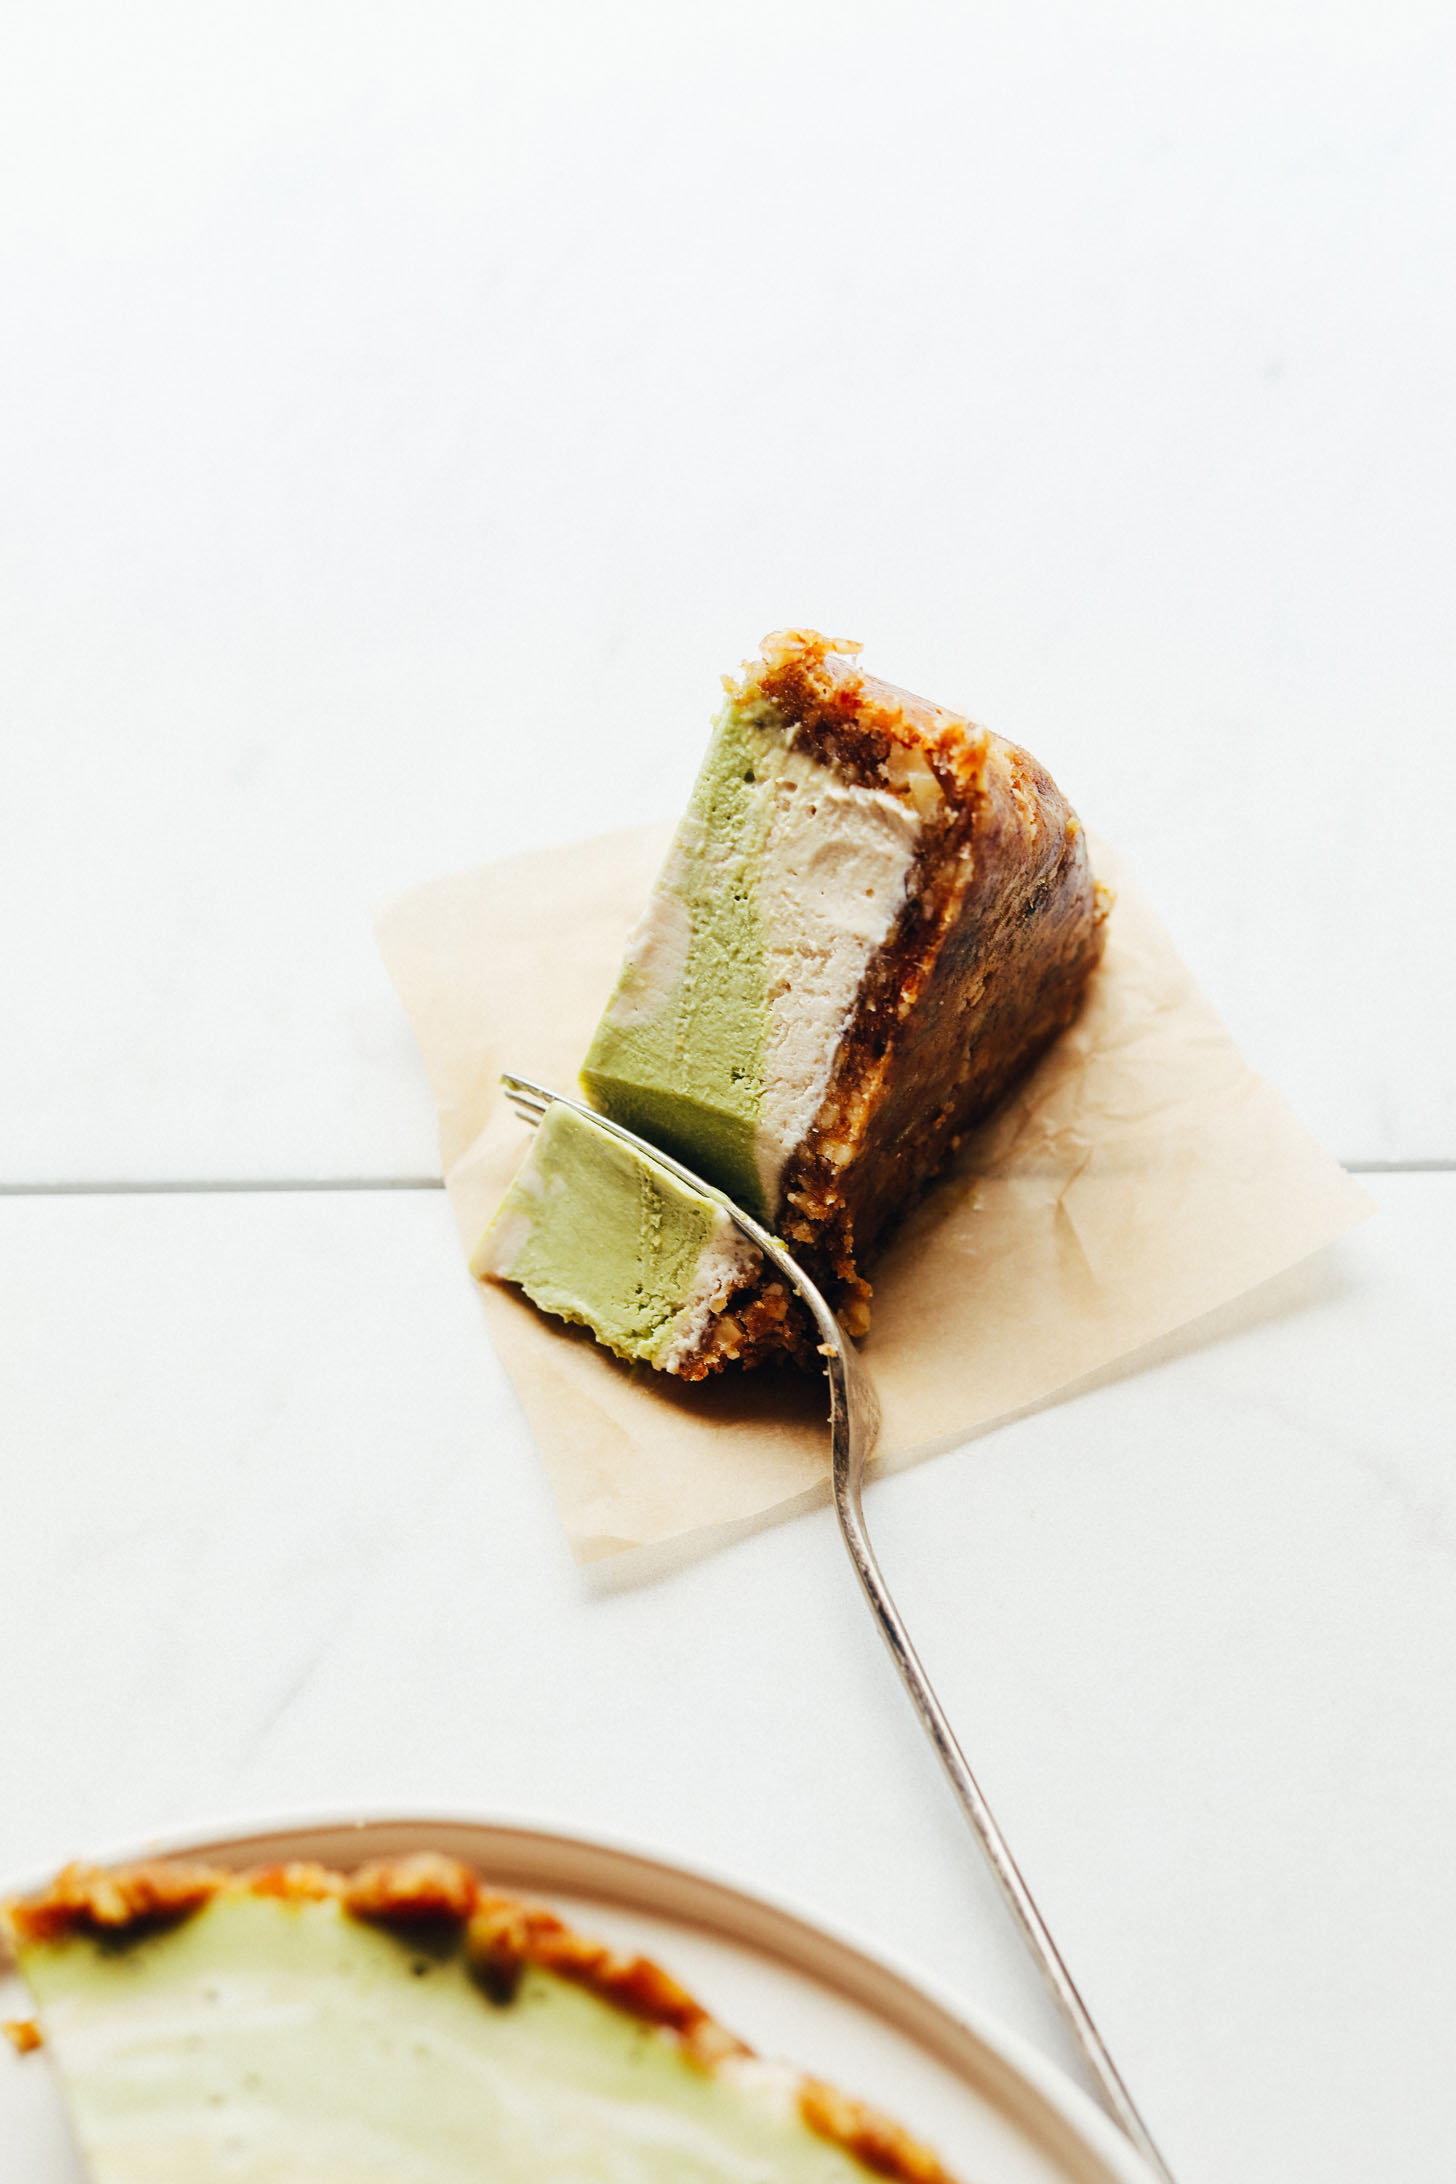 AMAZING Matcha Swirl Cheesecake! 1 blender, simple, naturally sweetened, SO delicious! #matcha #cheesecake #recipe #vegan #glutenfree #minimalistbaker